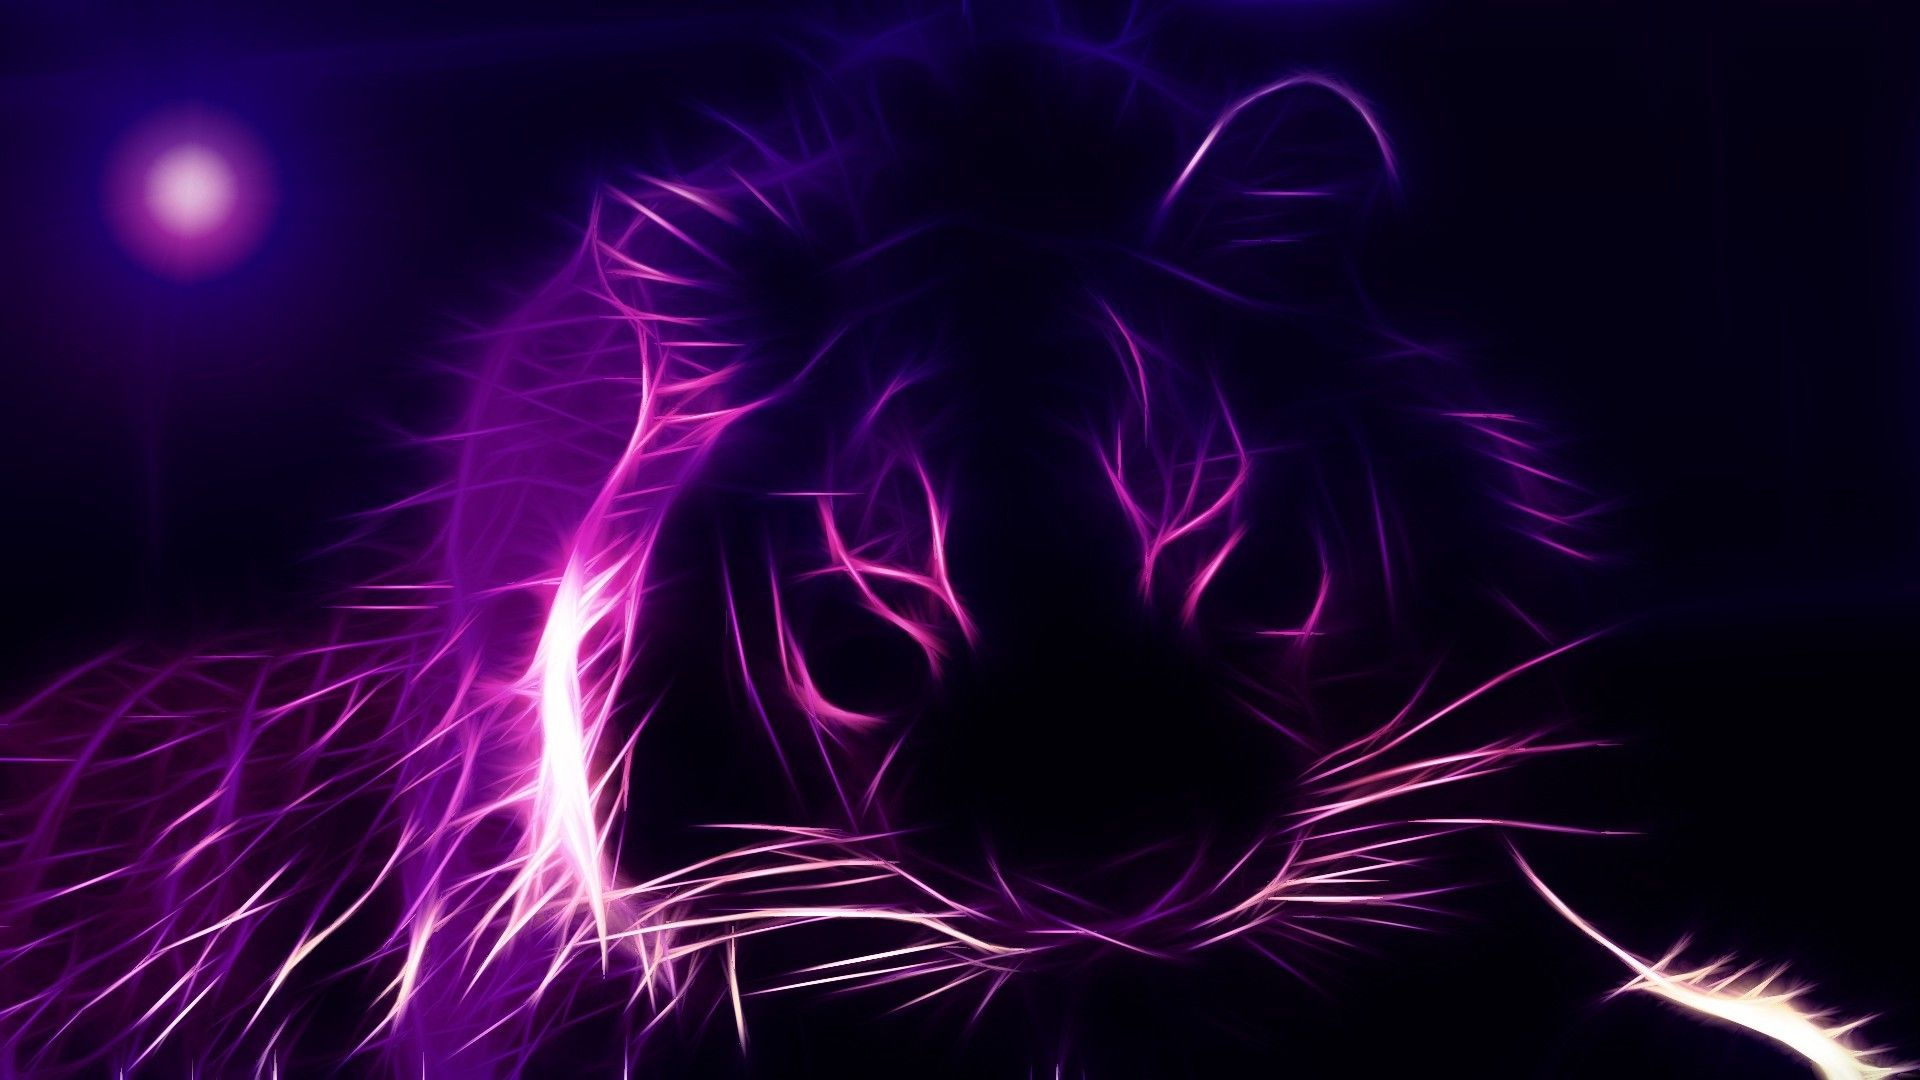 1920x1080 Purple Fantasy Lion Desktop Pc And Mac Wallpaper